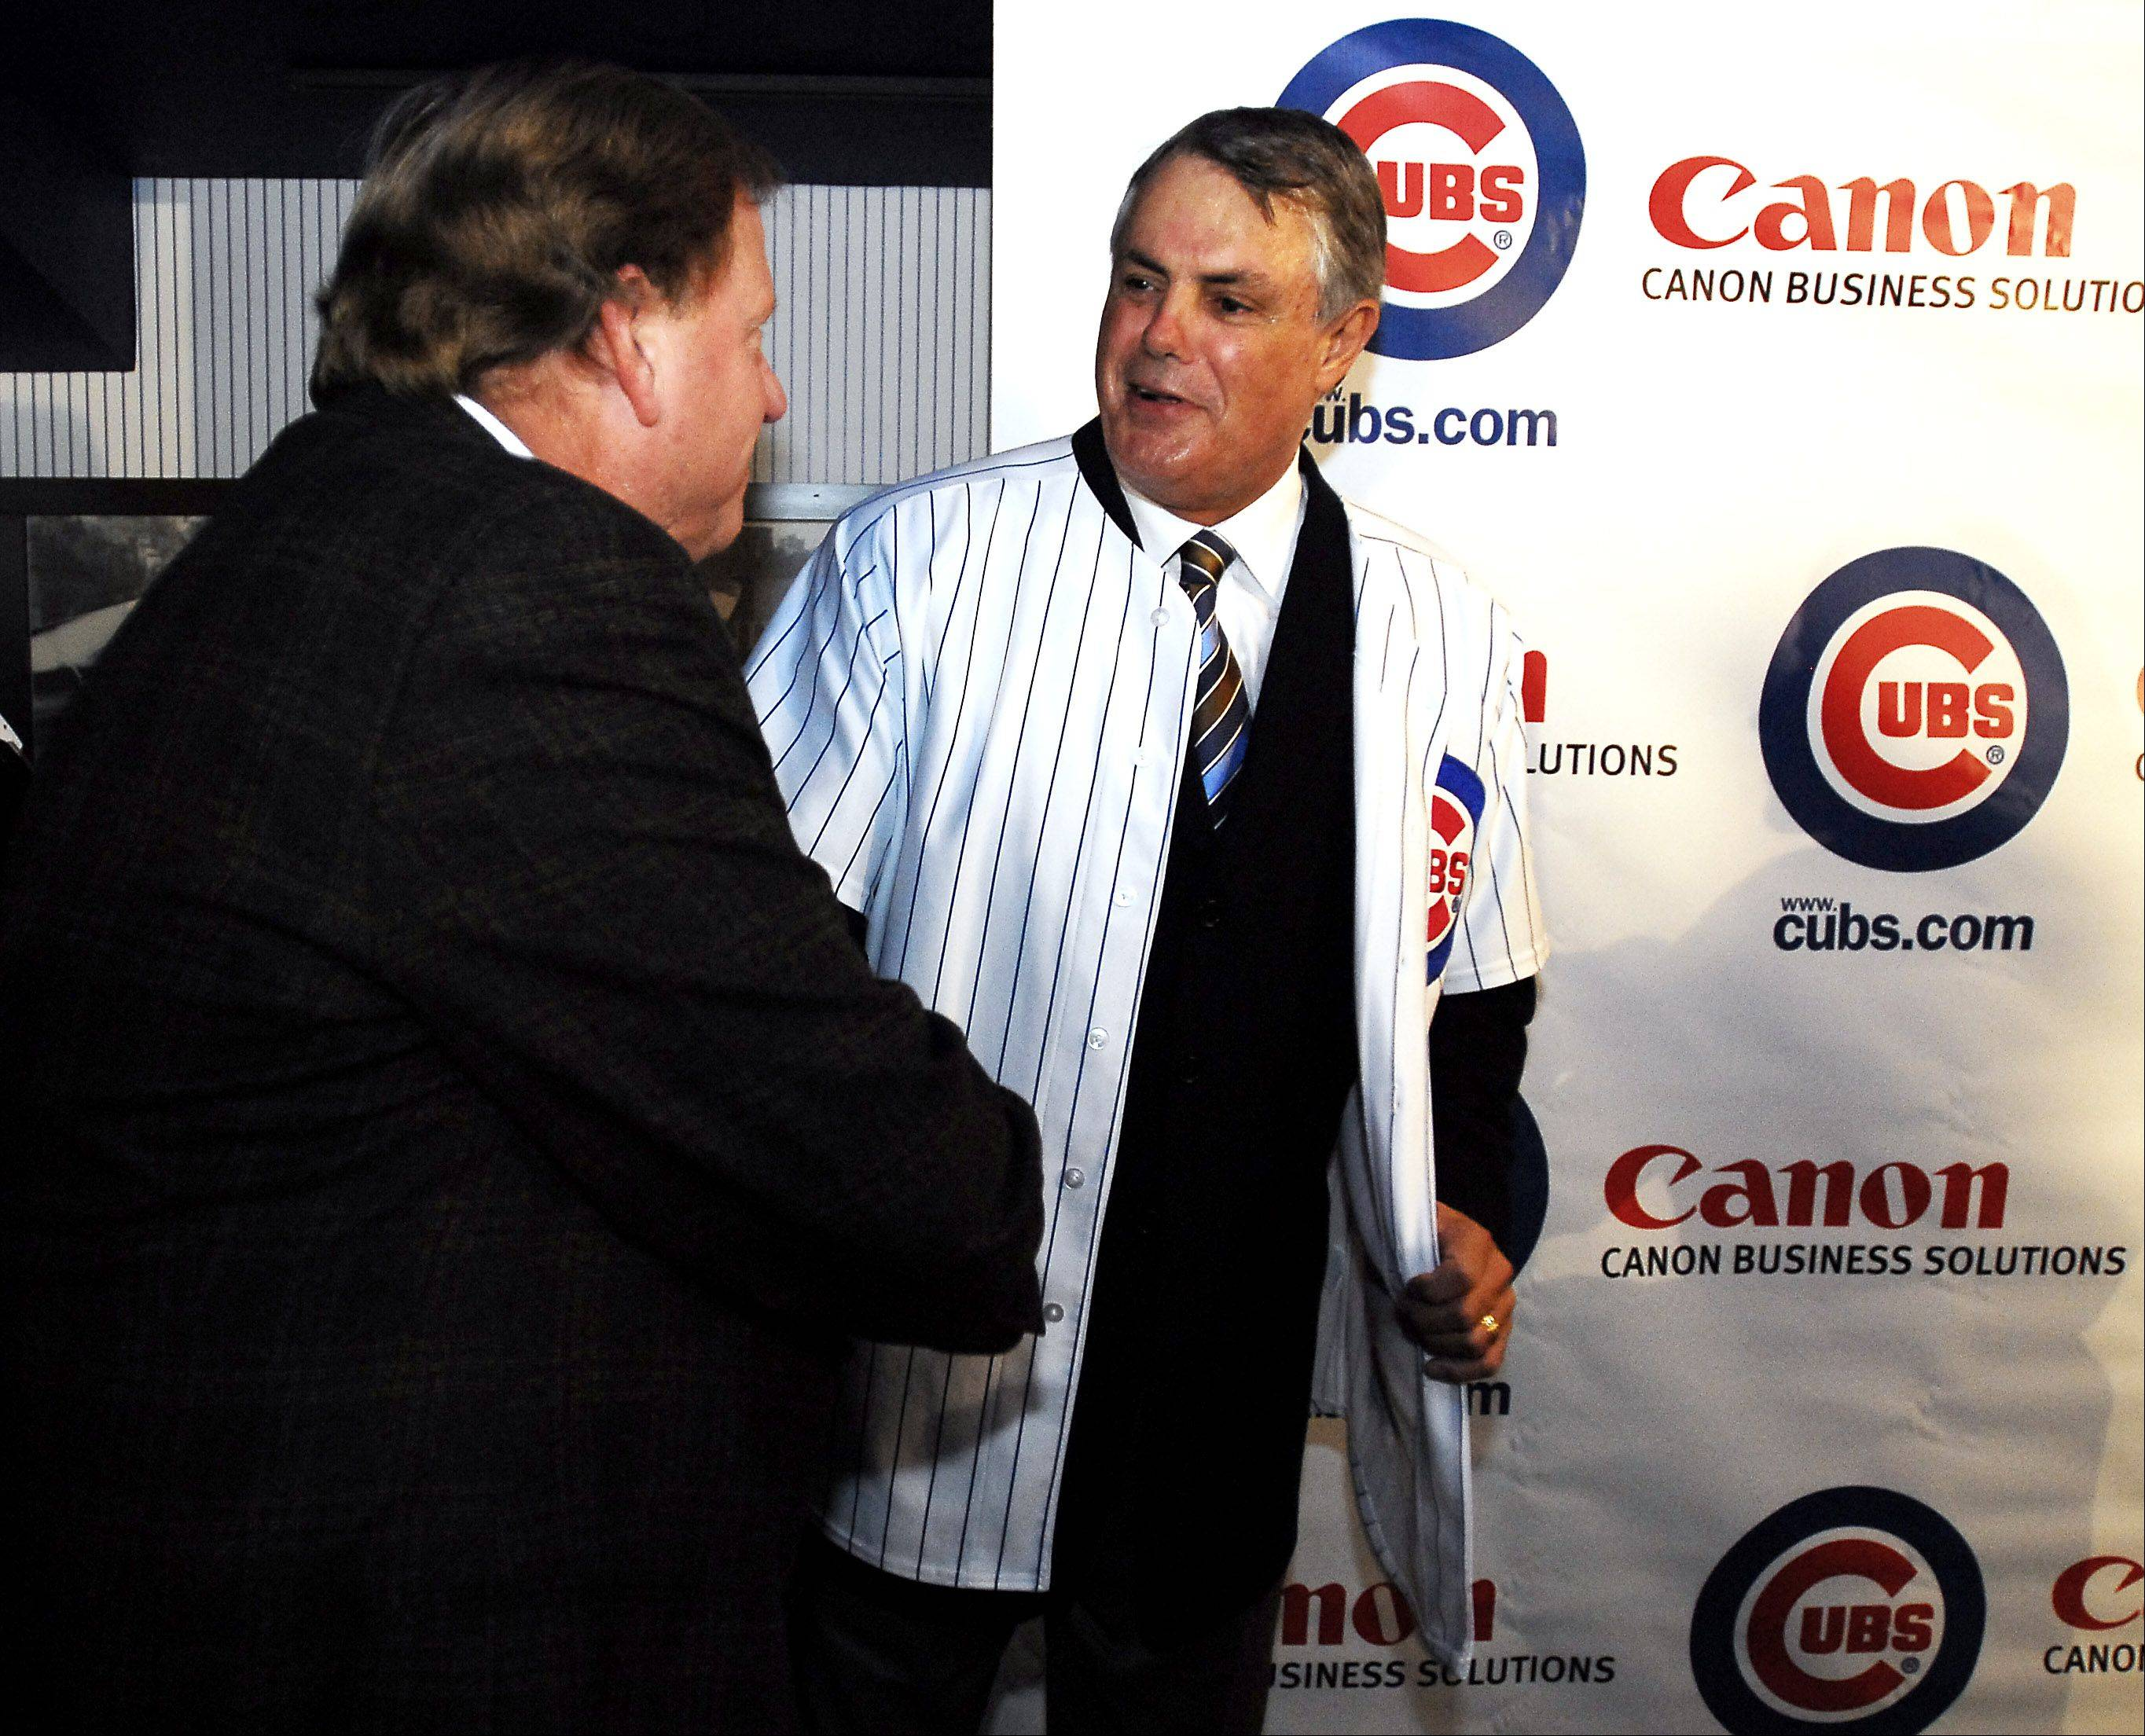 Chicago Cubs welcome new manager Lou Piniella to the club. Cubs General Manager Jim Hendry (left) and Lou Piniella shake hands after the news event.